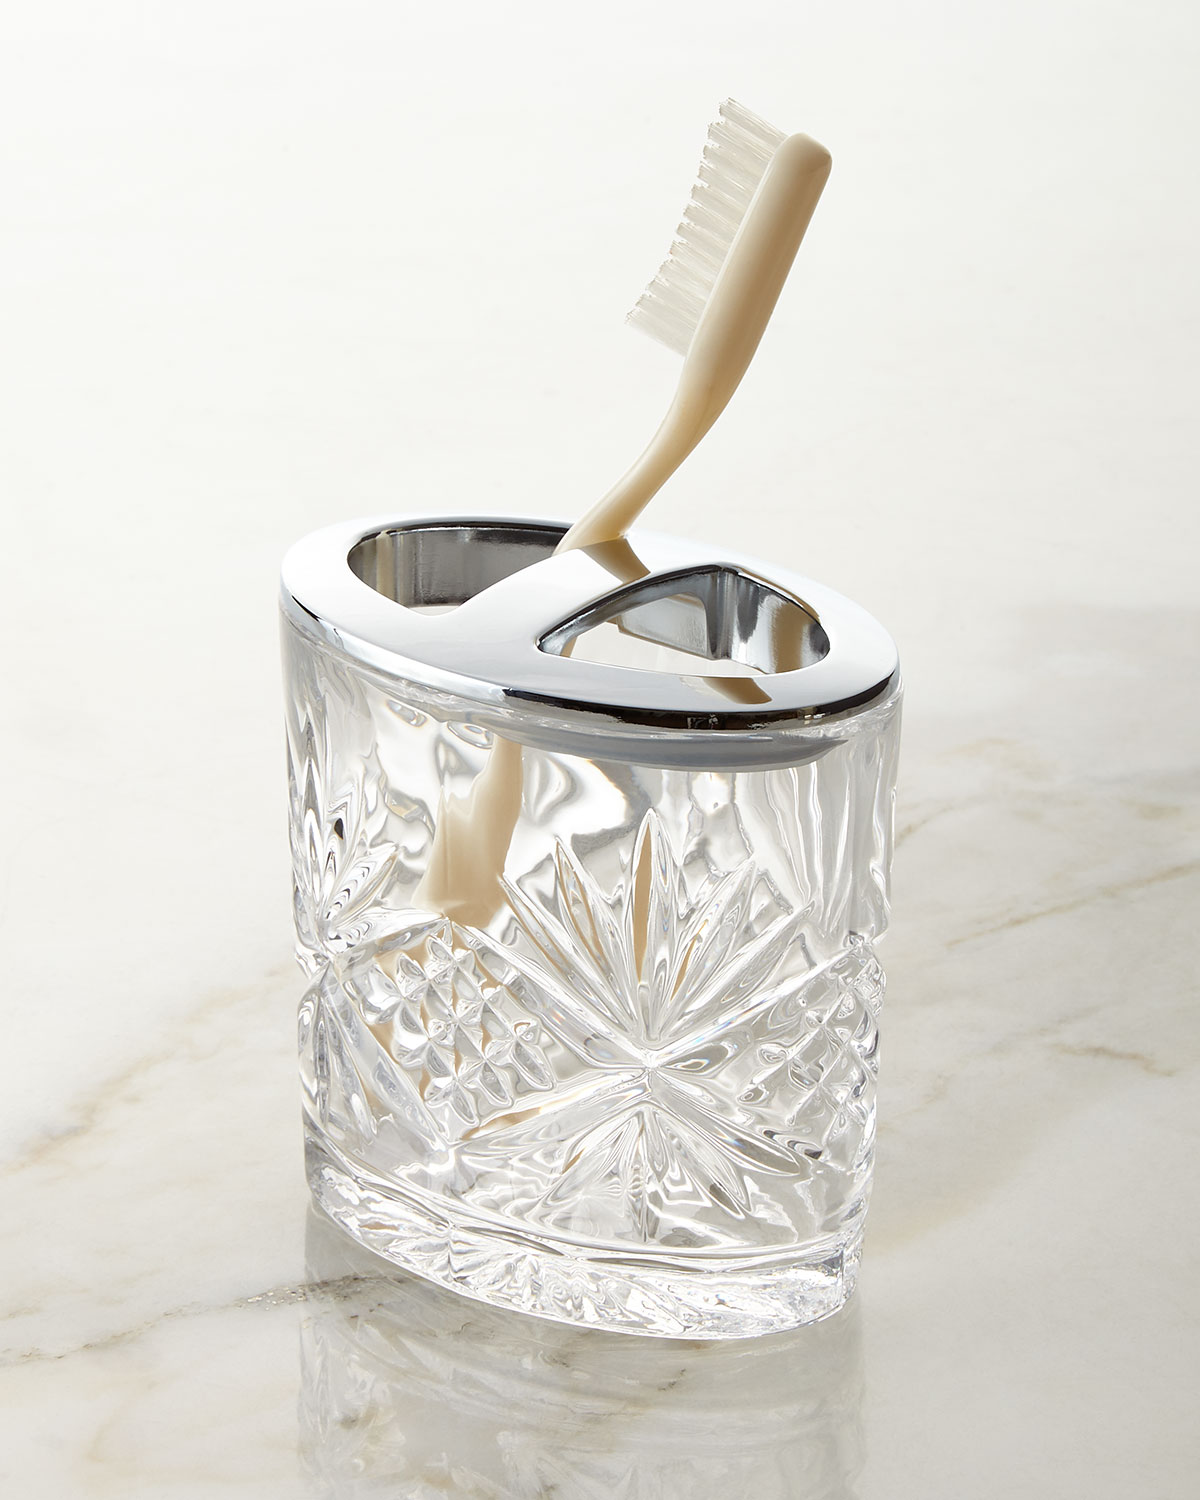 Godinger Dublin Toothbrush Holder